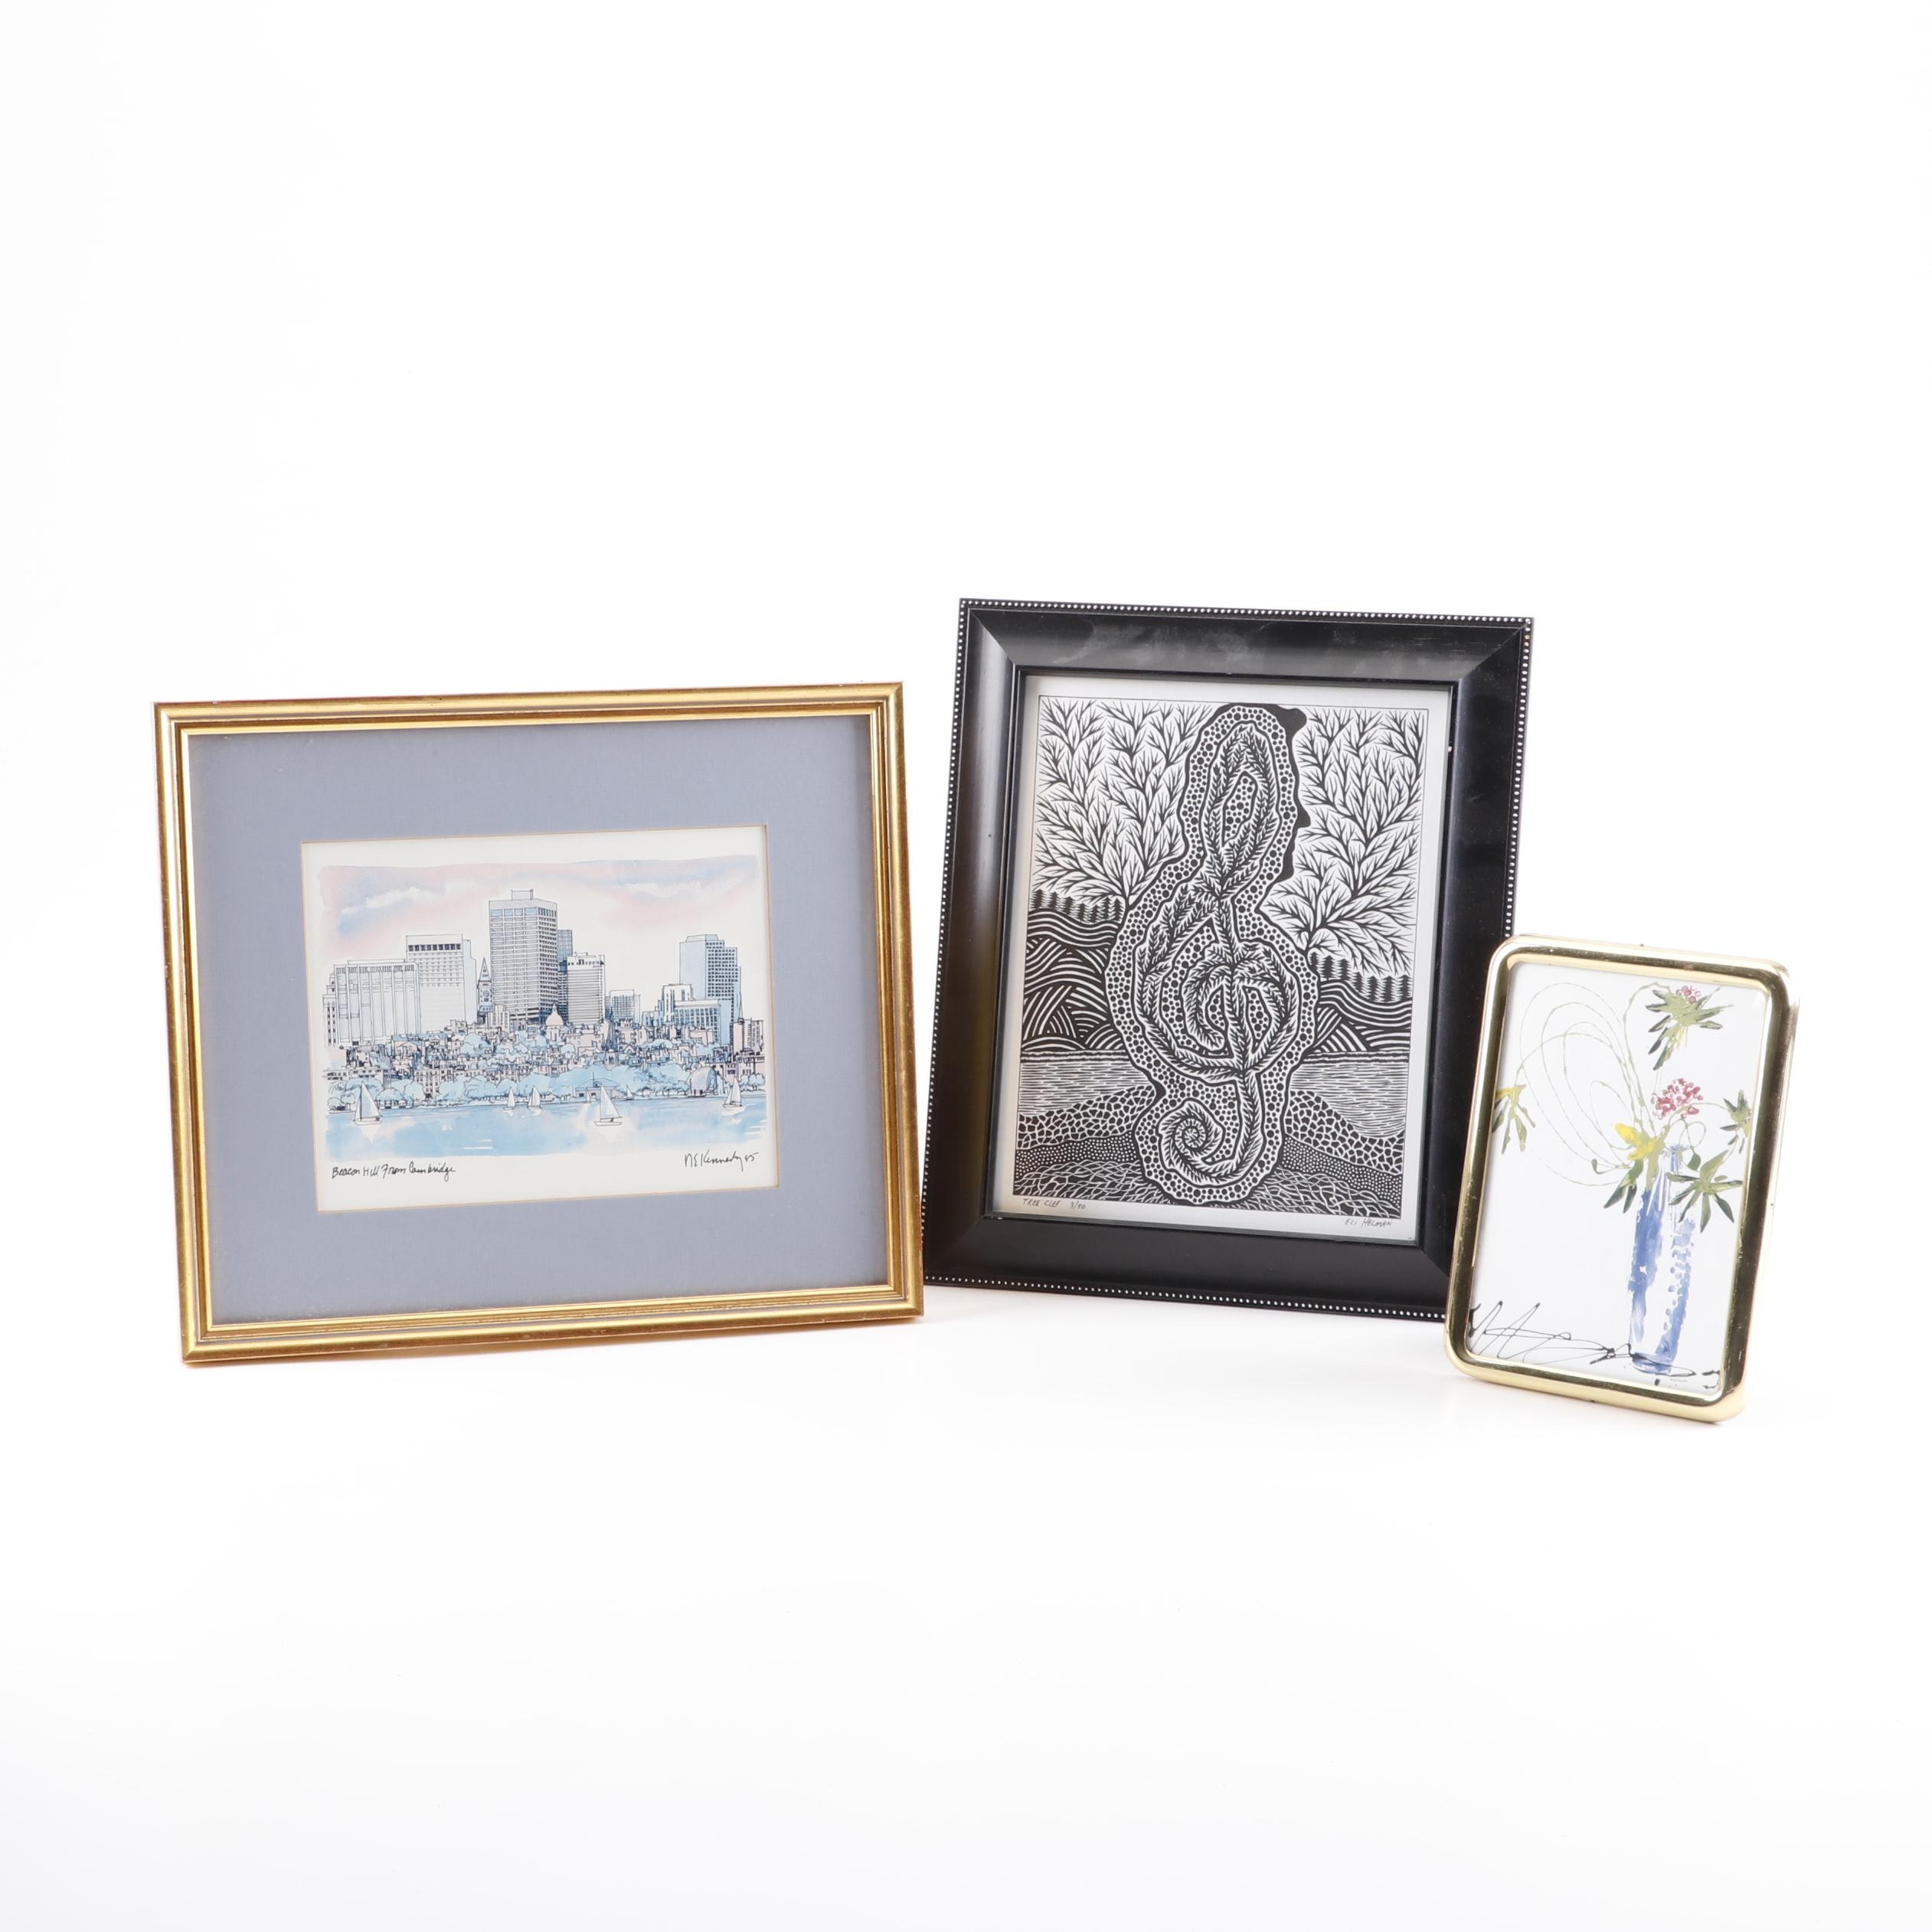 Assortment of Offset Lithographs and Lithographs